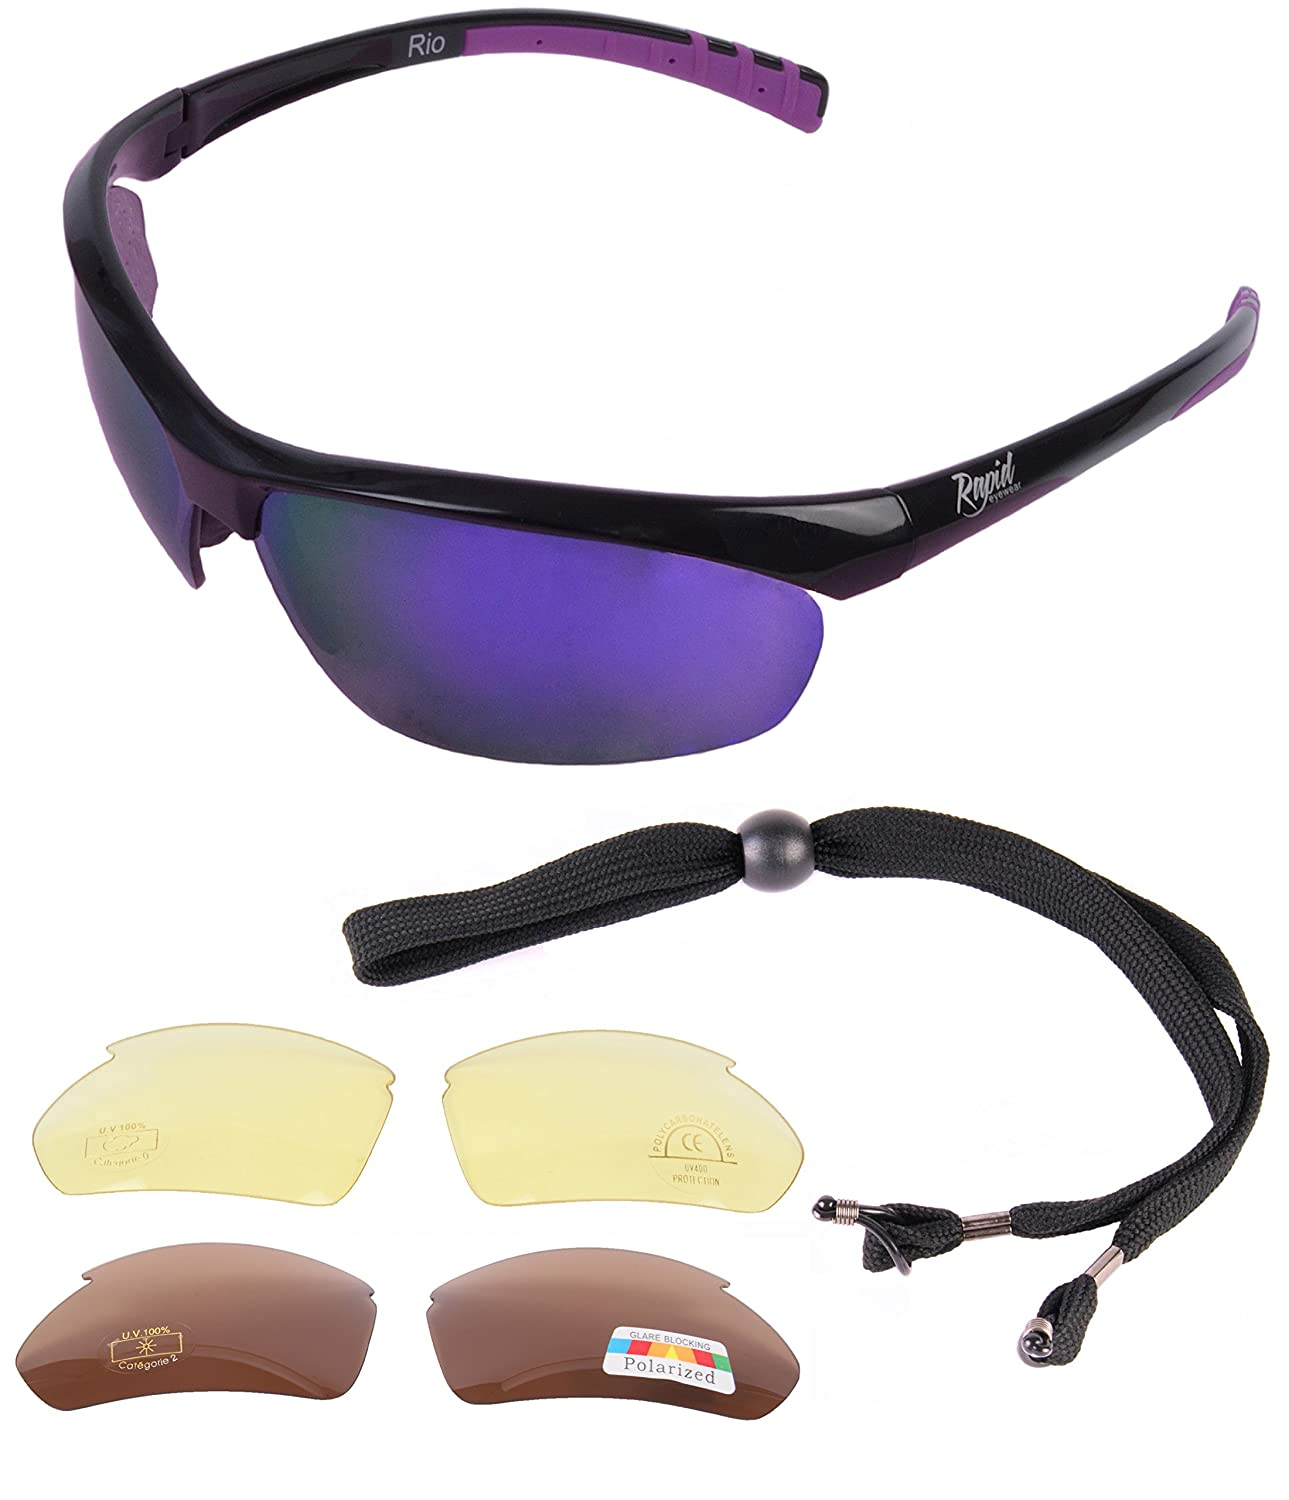 a21355b3d809 Rapid Eyewear Rio UV400 SPORTS SUNGLASSES For Women